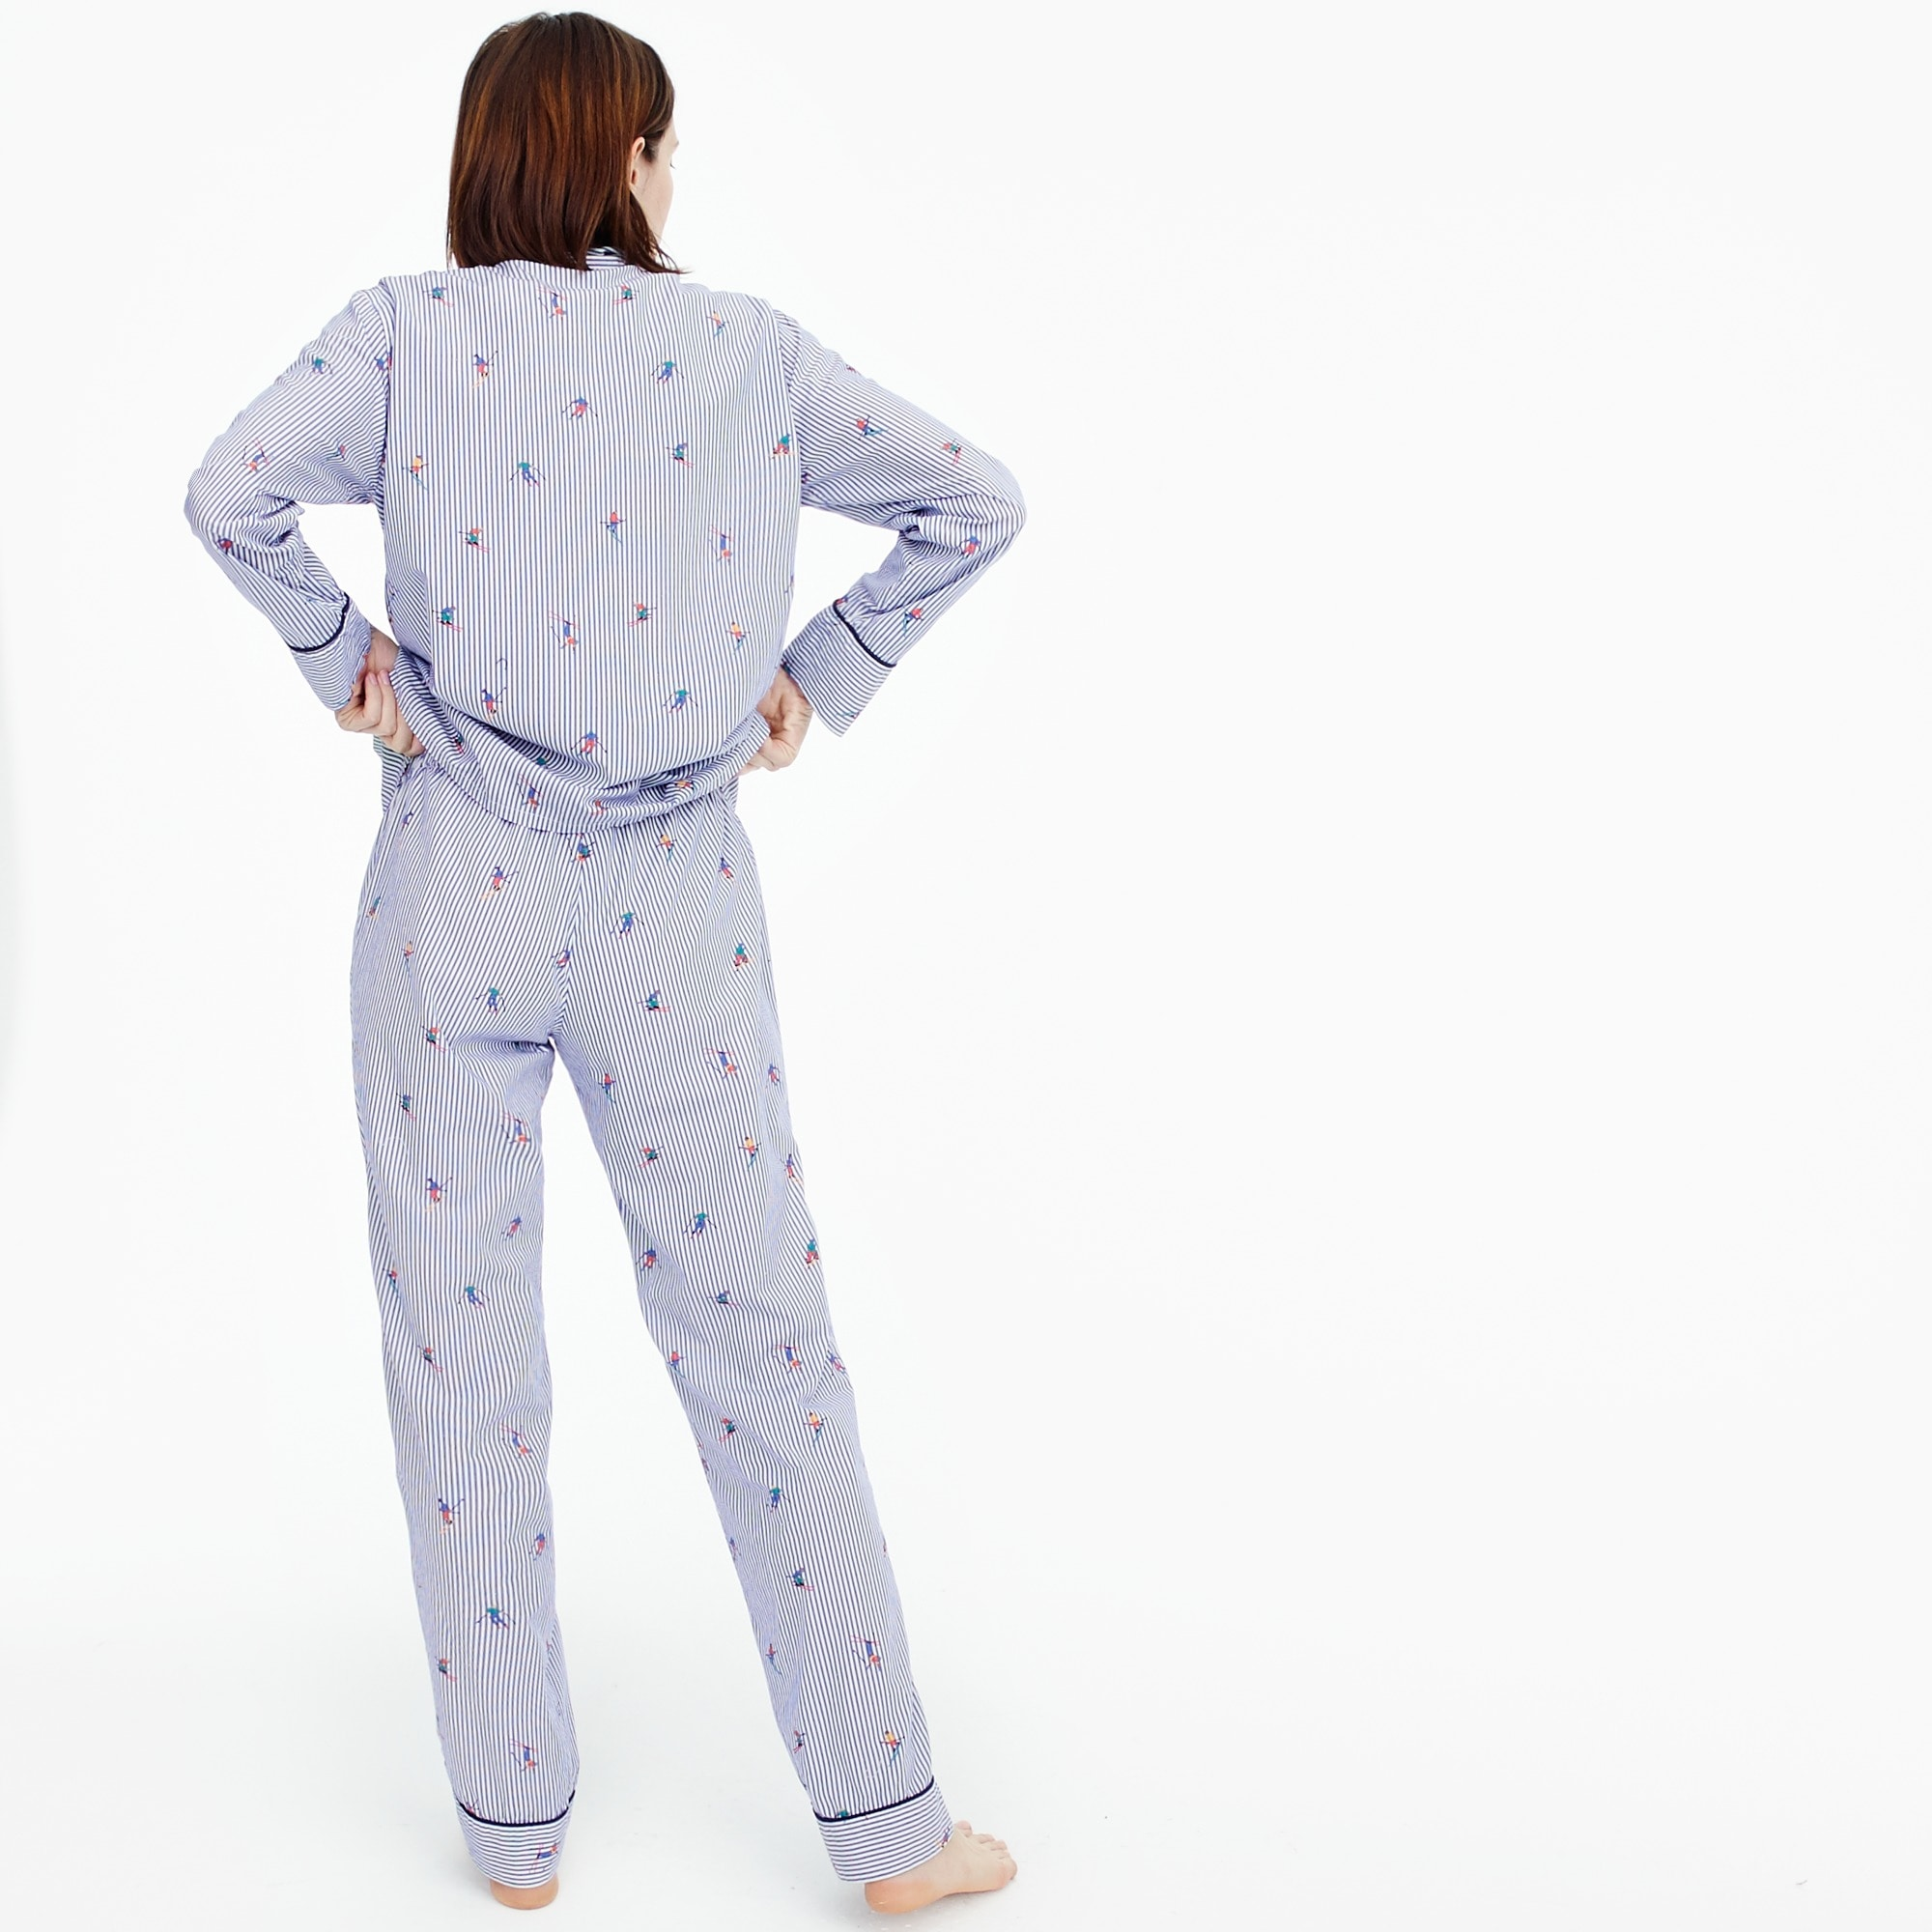 Image 3 for Skiers pajama set